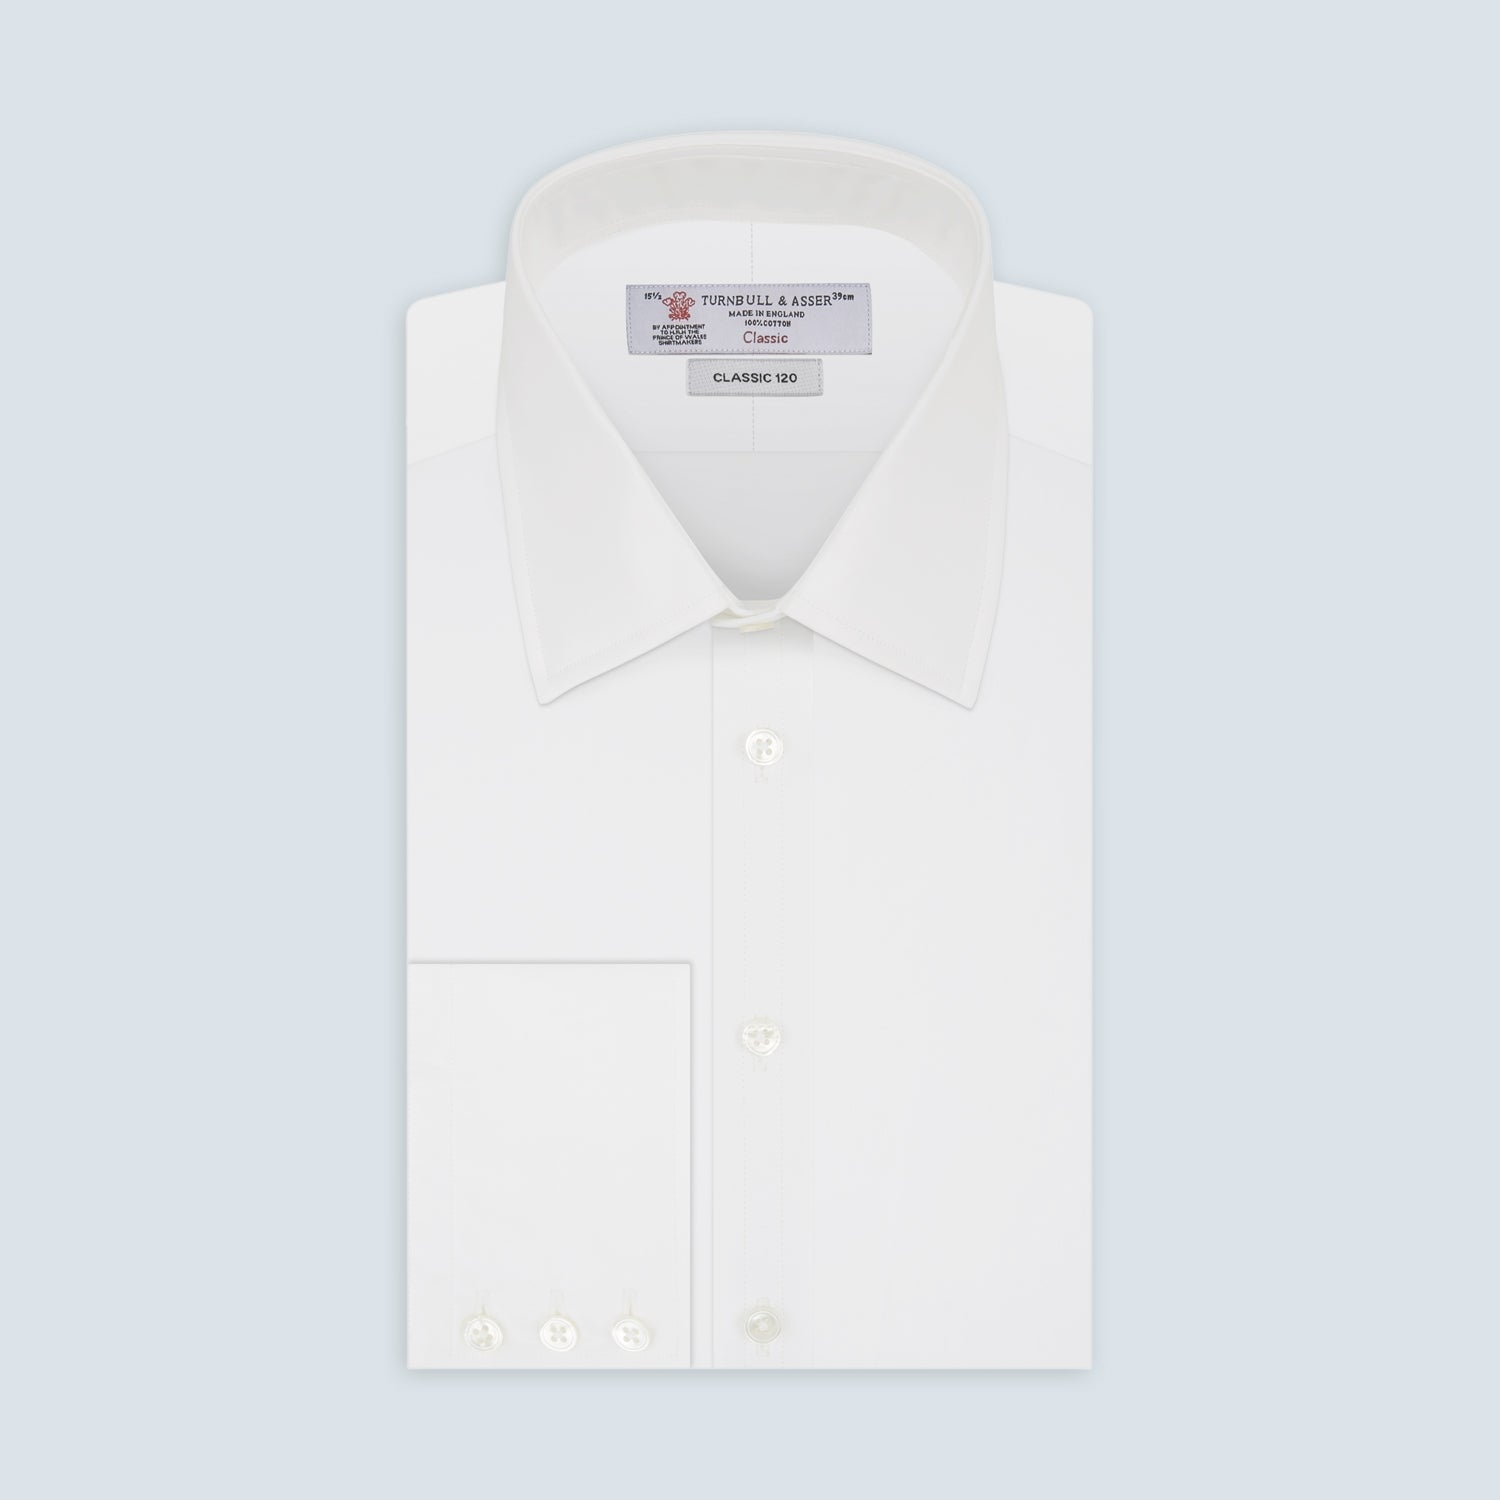 Two-Fold 120 White Shirt with T&A Collar and 3-Button Cuffs - 16.5 from Turnbull & Asser